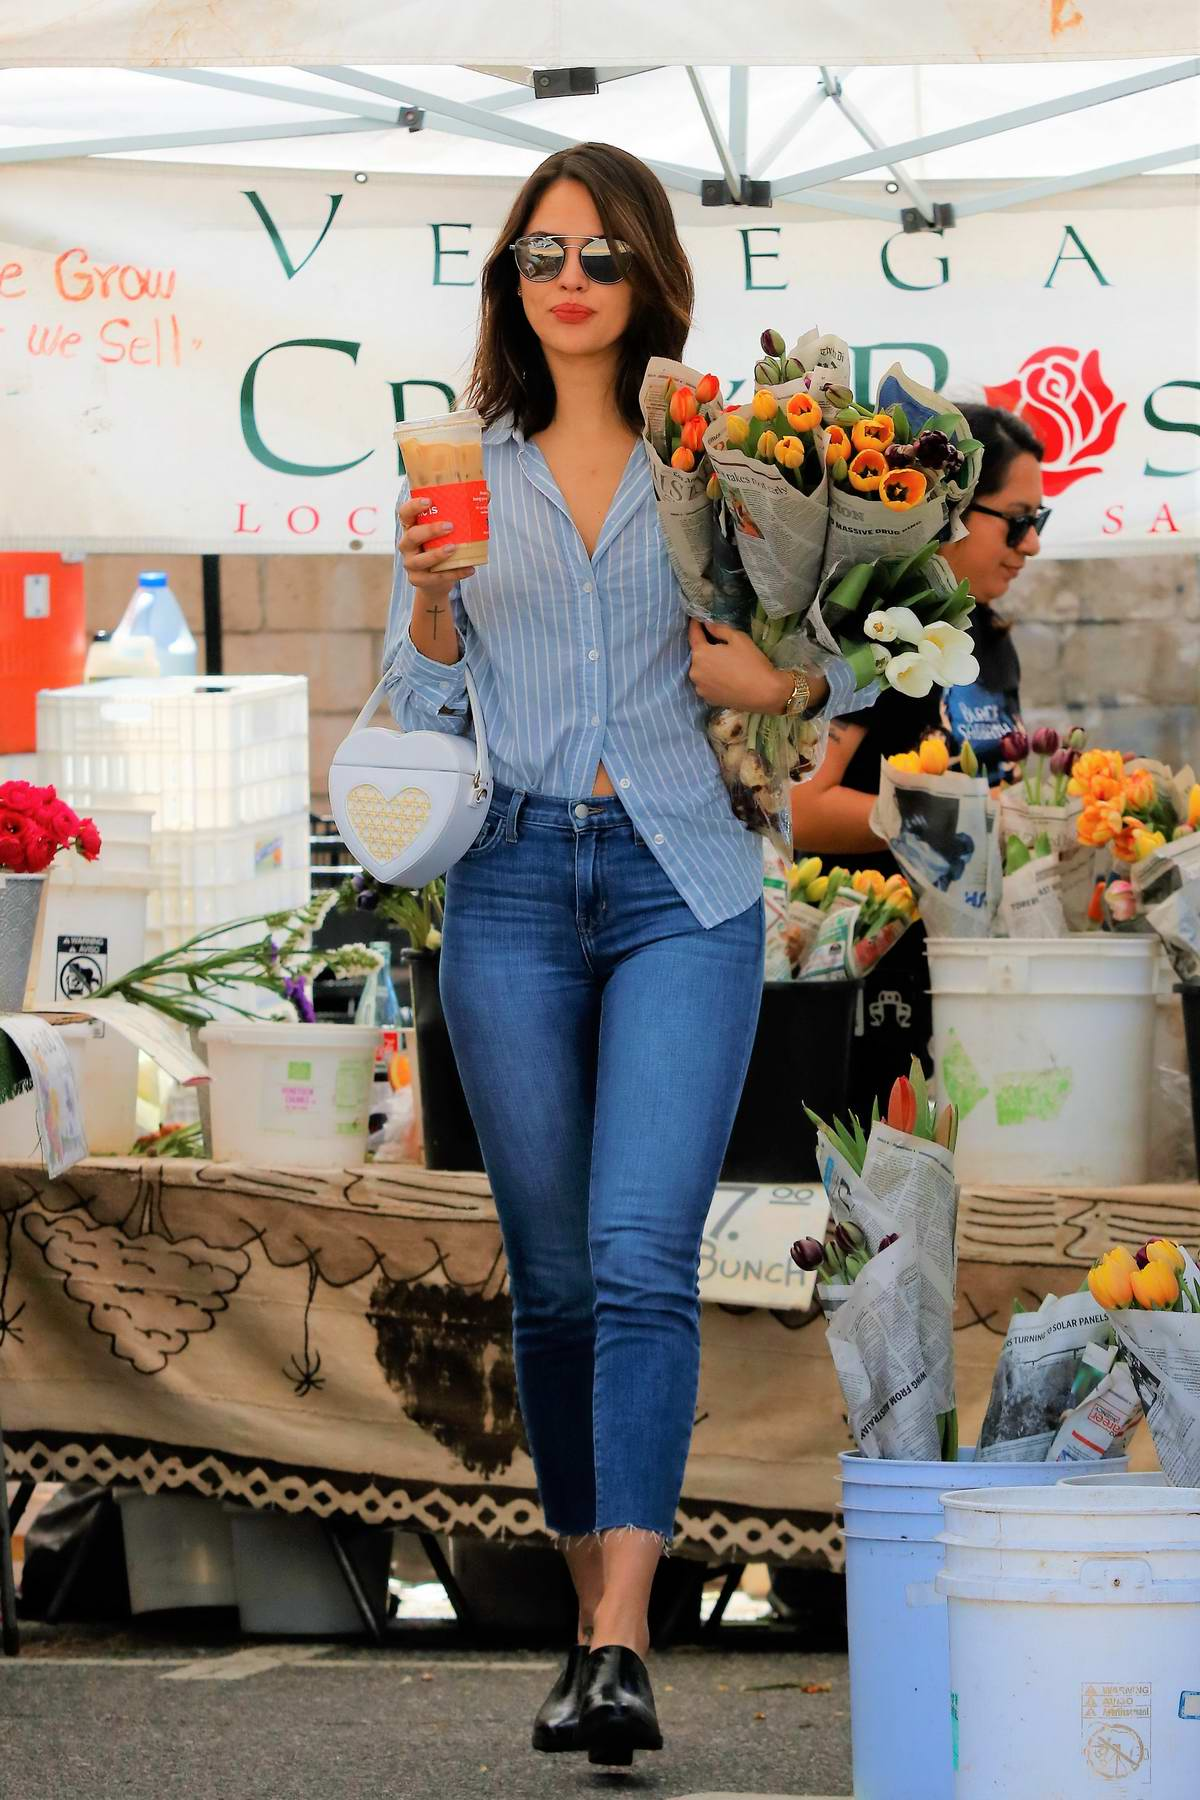 Eiza Gonzalez looks stunning while shopping flowers at a Farmers Market in Los Angeles